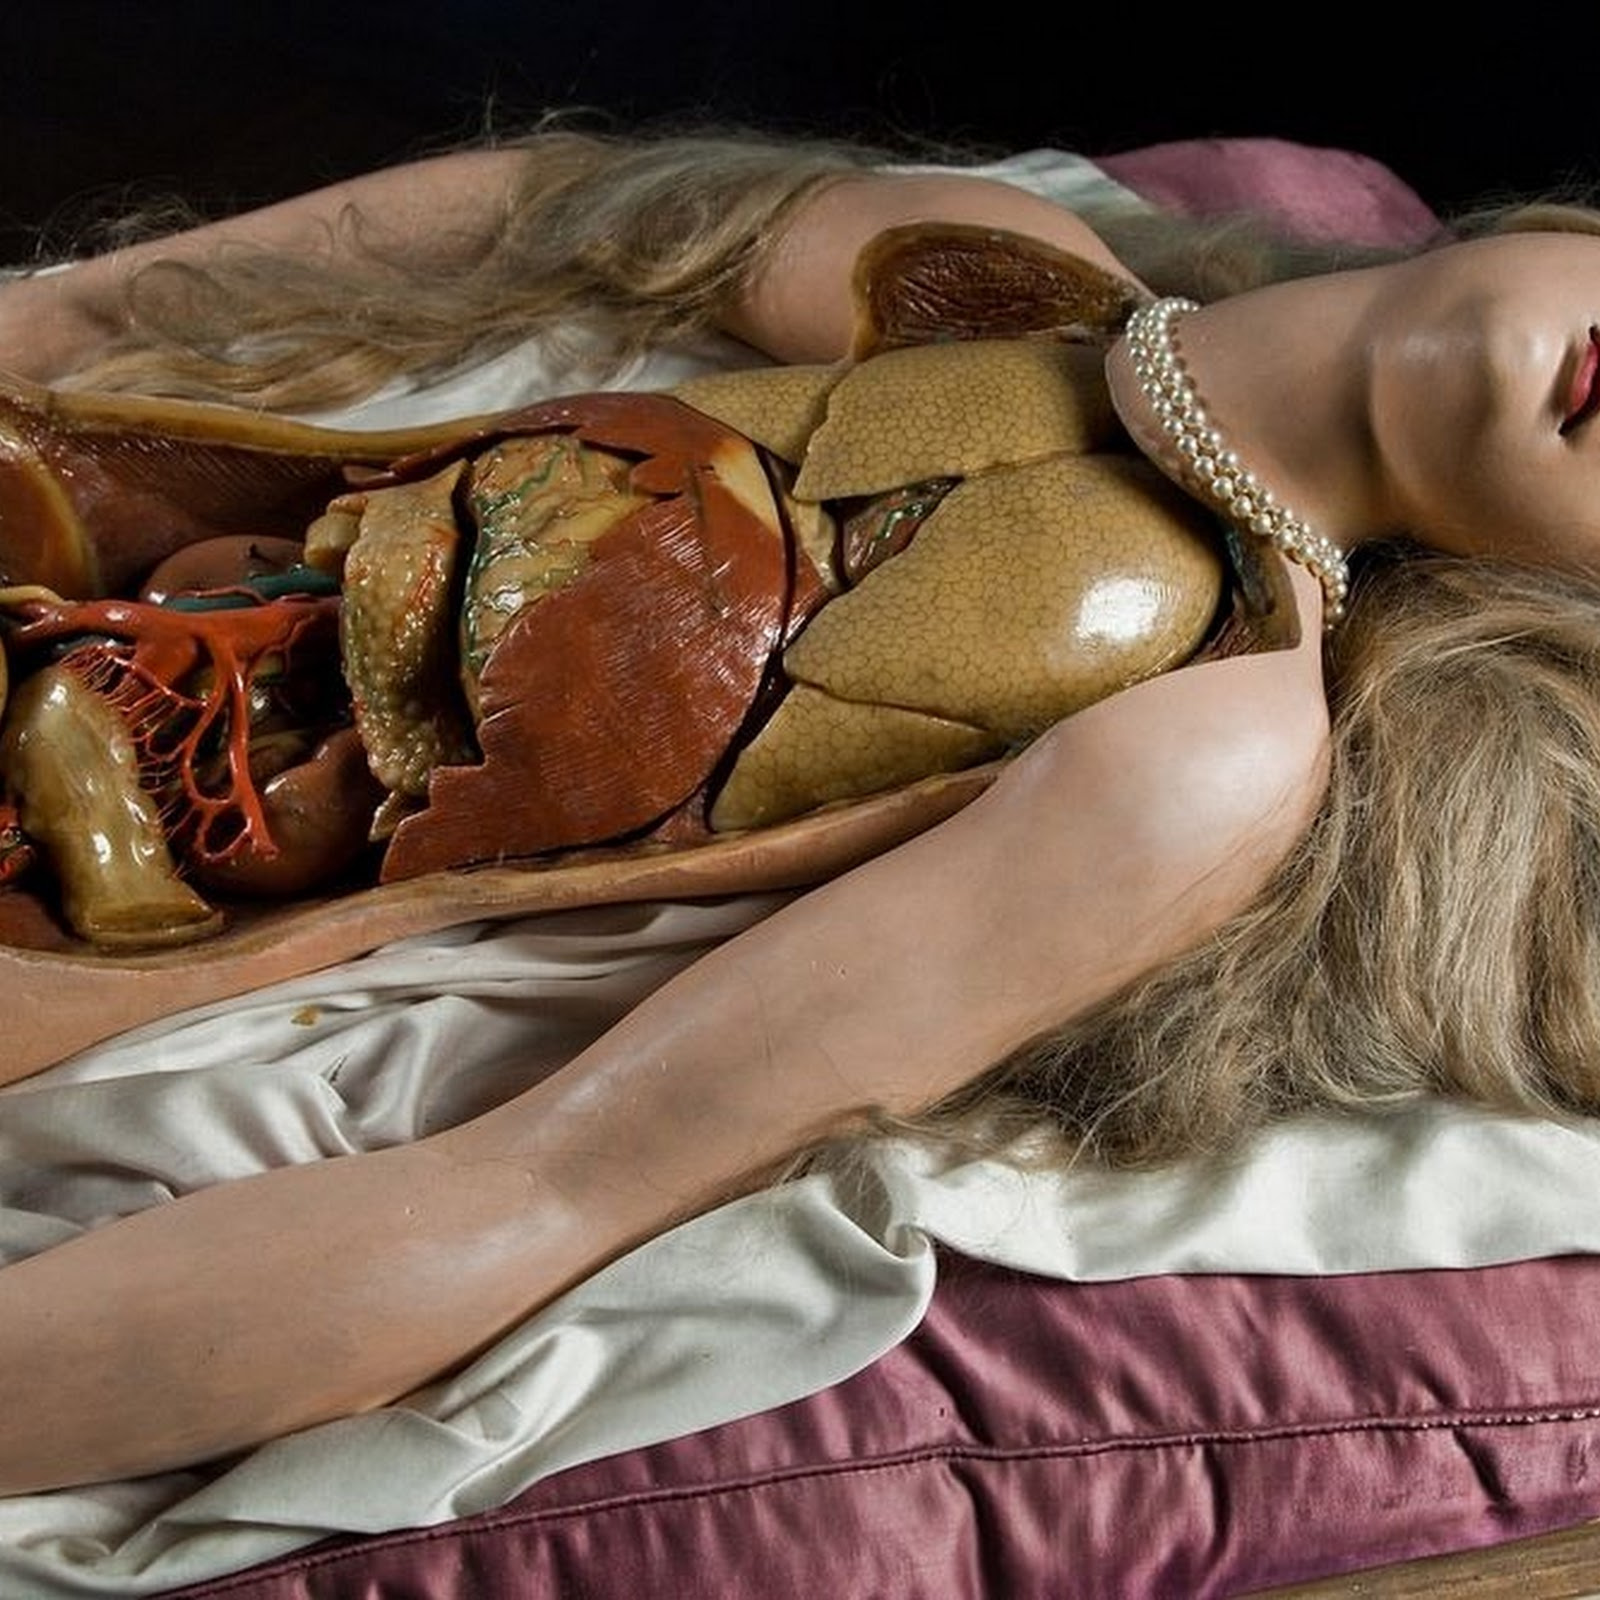 The Strangely Seductive 18th Century Anatomical Wax Models